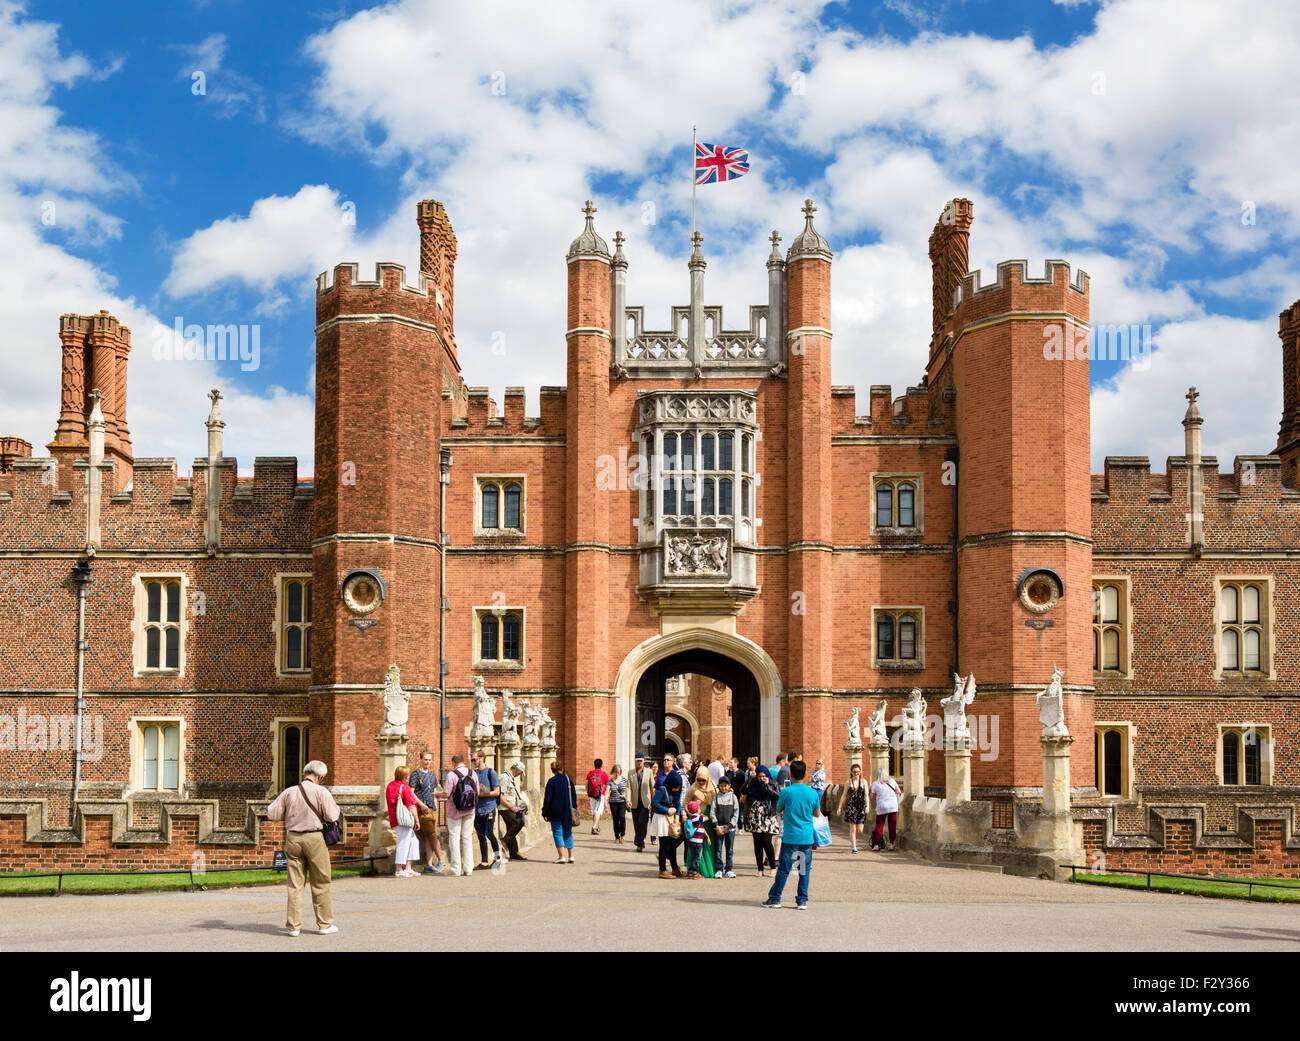 Hampton Court Palace. The West Front and Main Entrance to Hampton Court Palace, Richmond upon Thames, London, England, - Stock Image